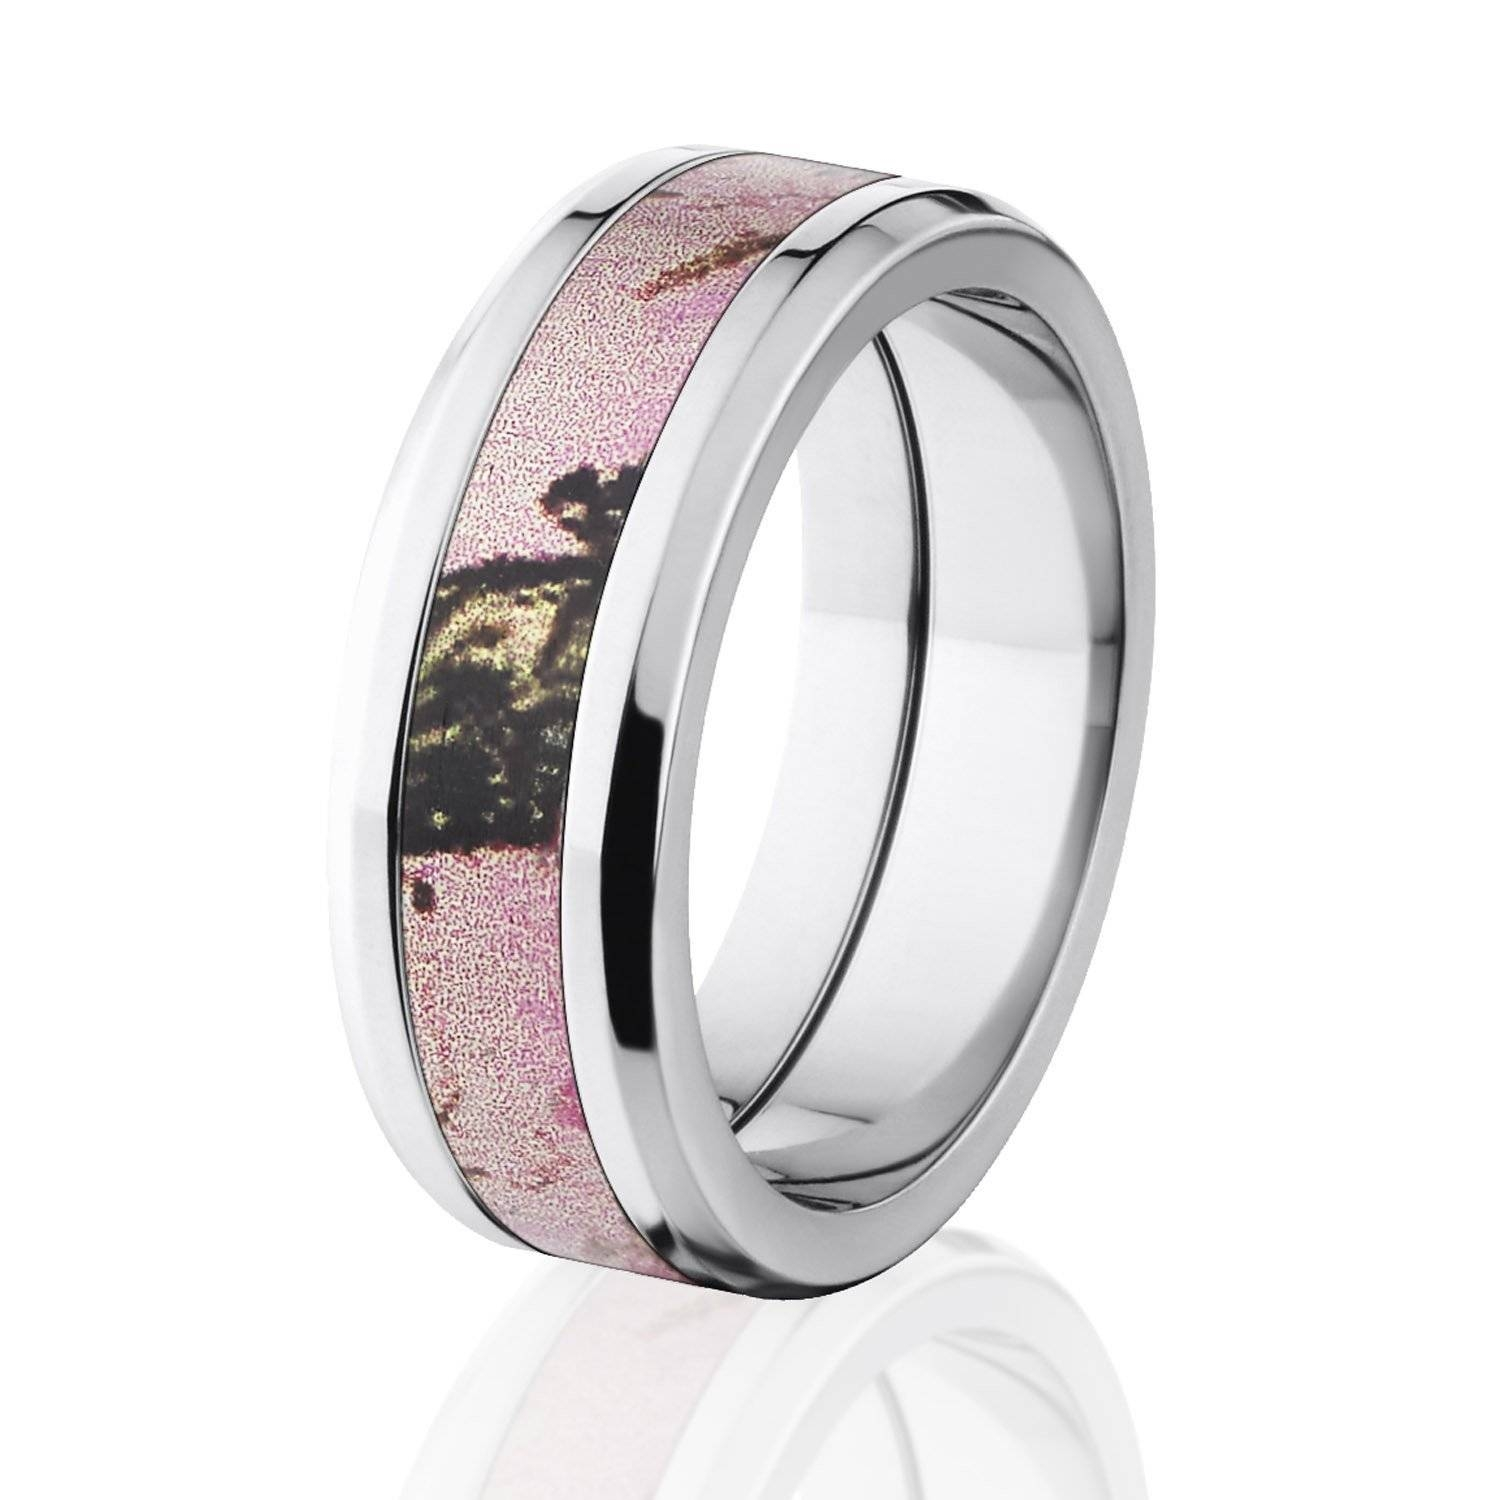 Pink Camo Ring Bevel Titanium Camo Rings Hunting Camo Wedding Ring Inside Custom Camo Wedding Rings (View 11 of 15)